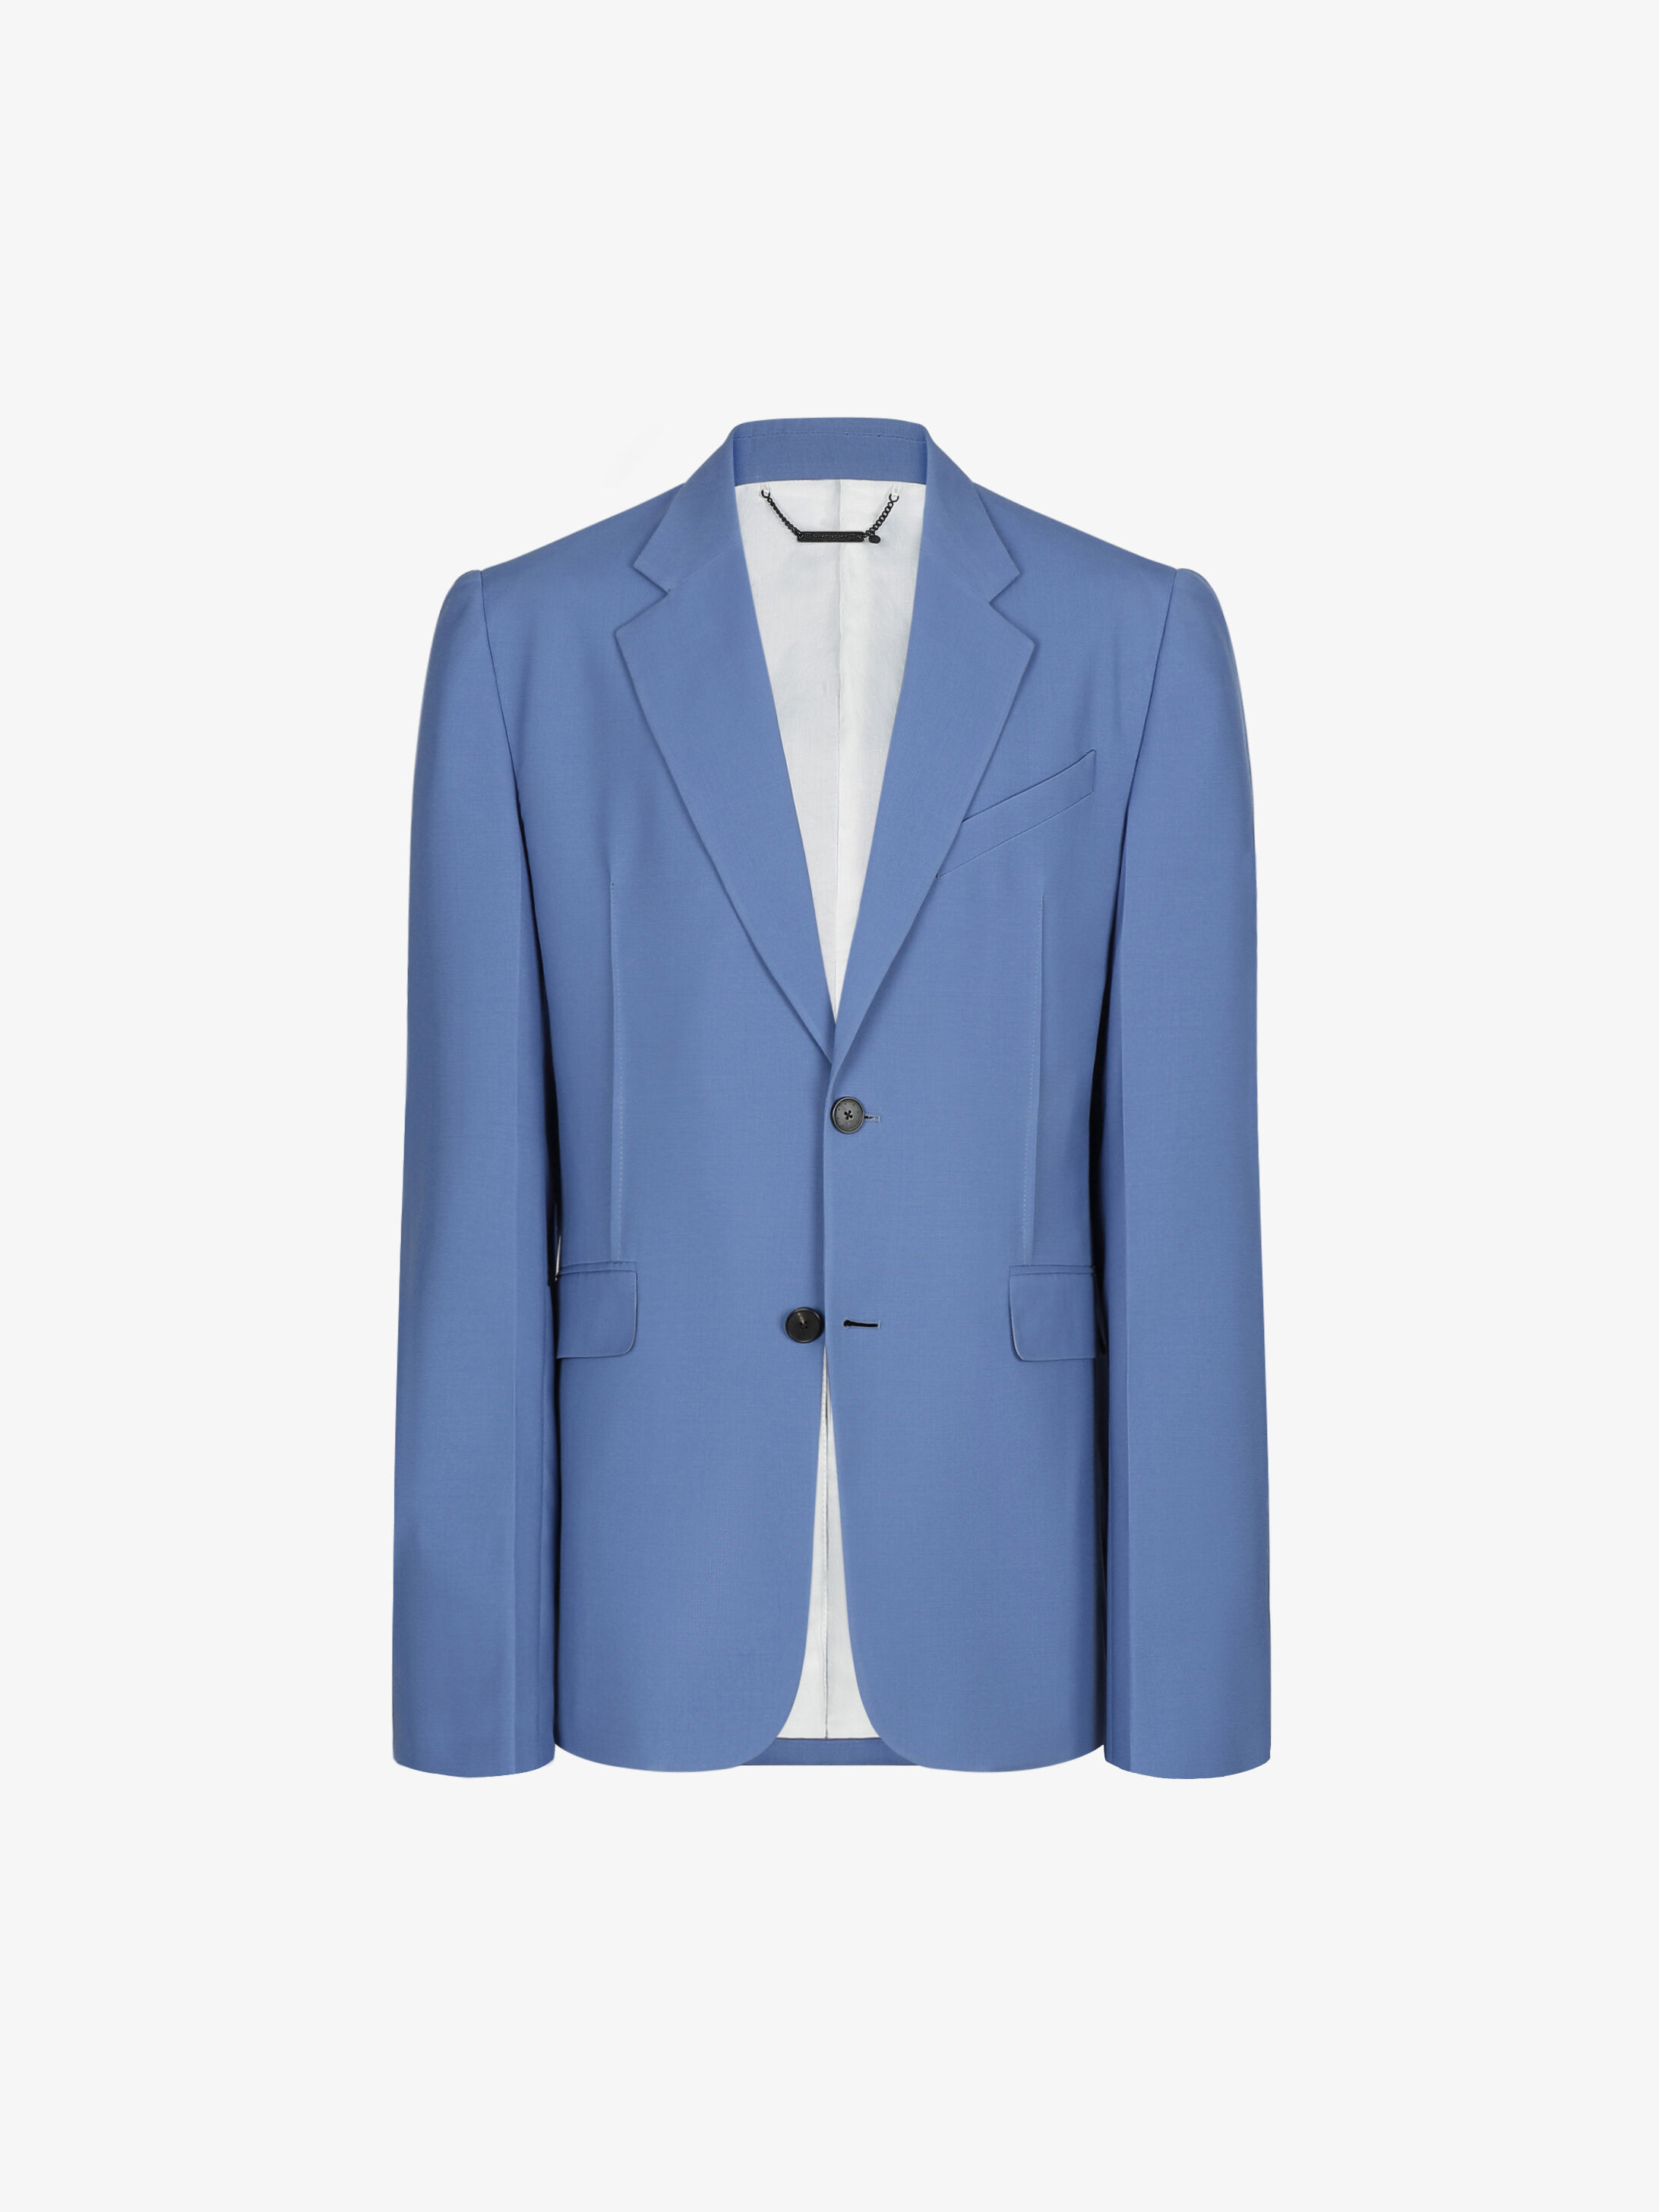 Men's Suits and Blazers collection by